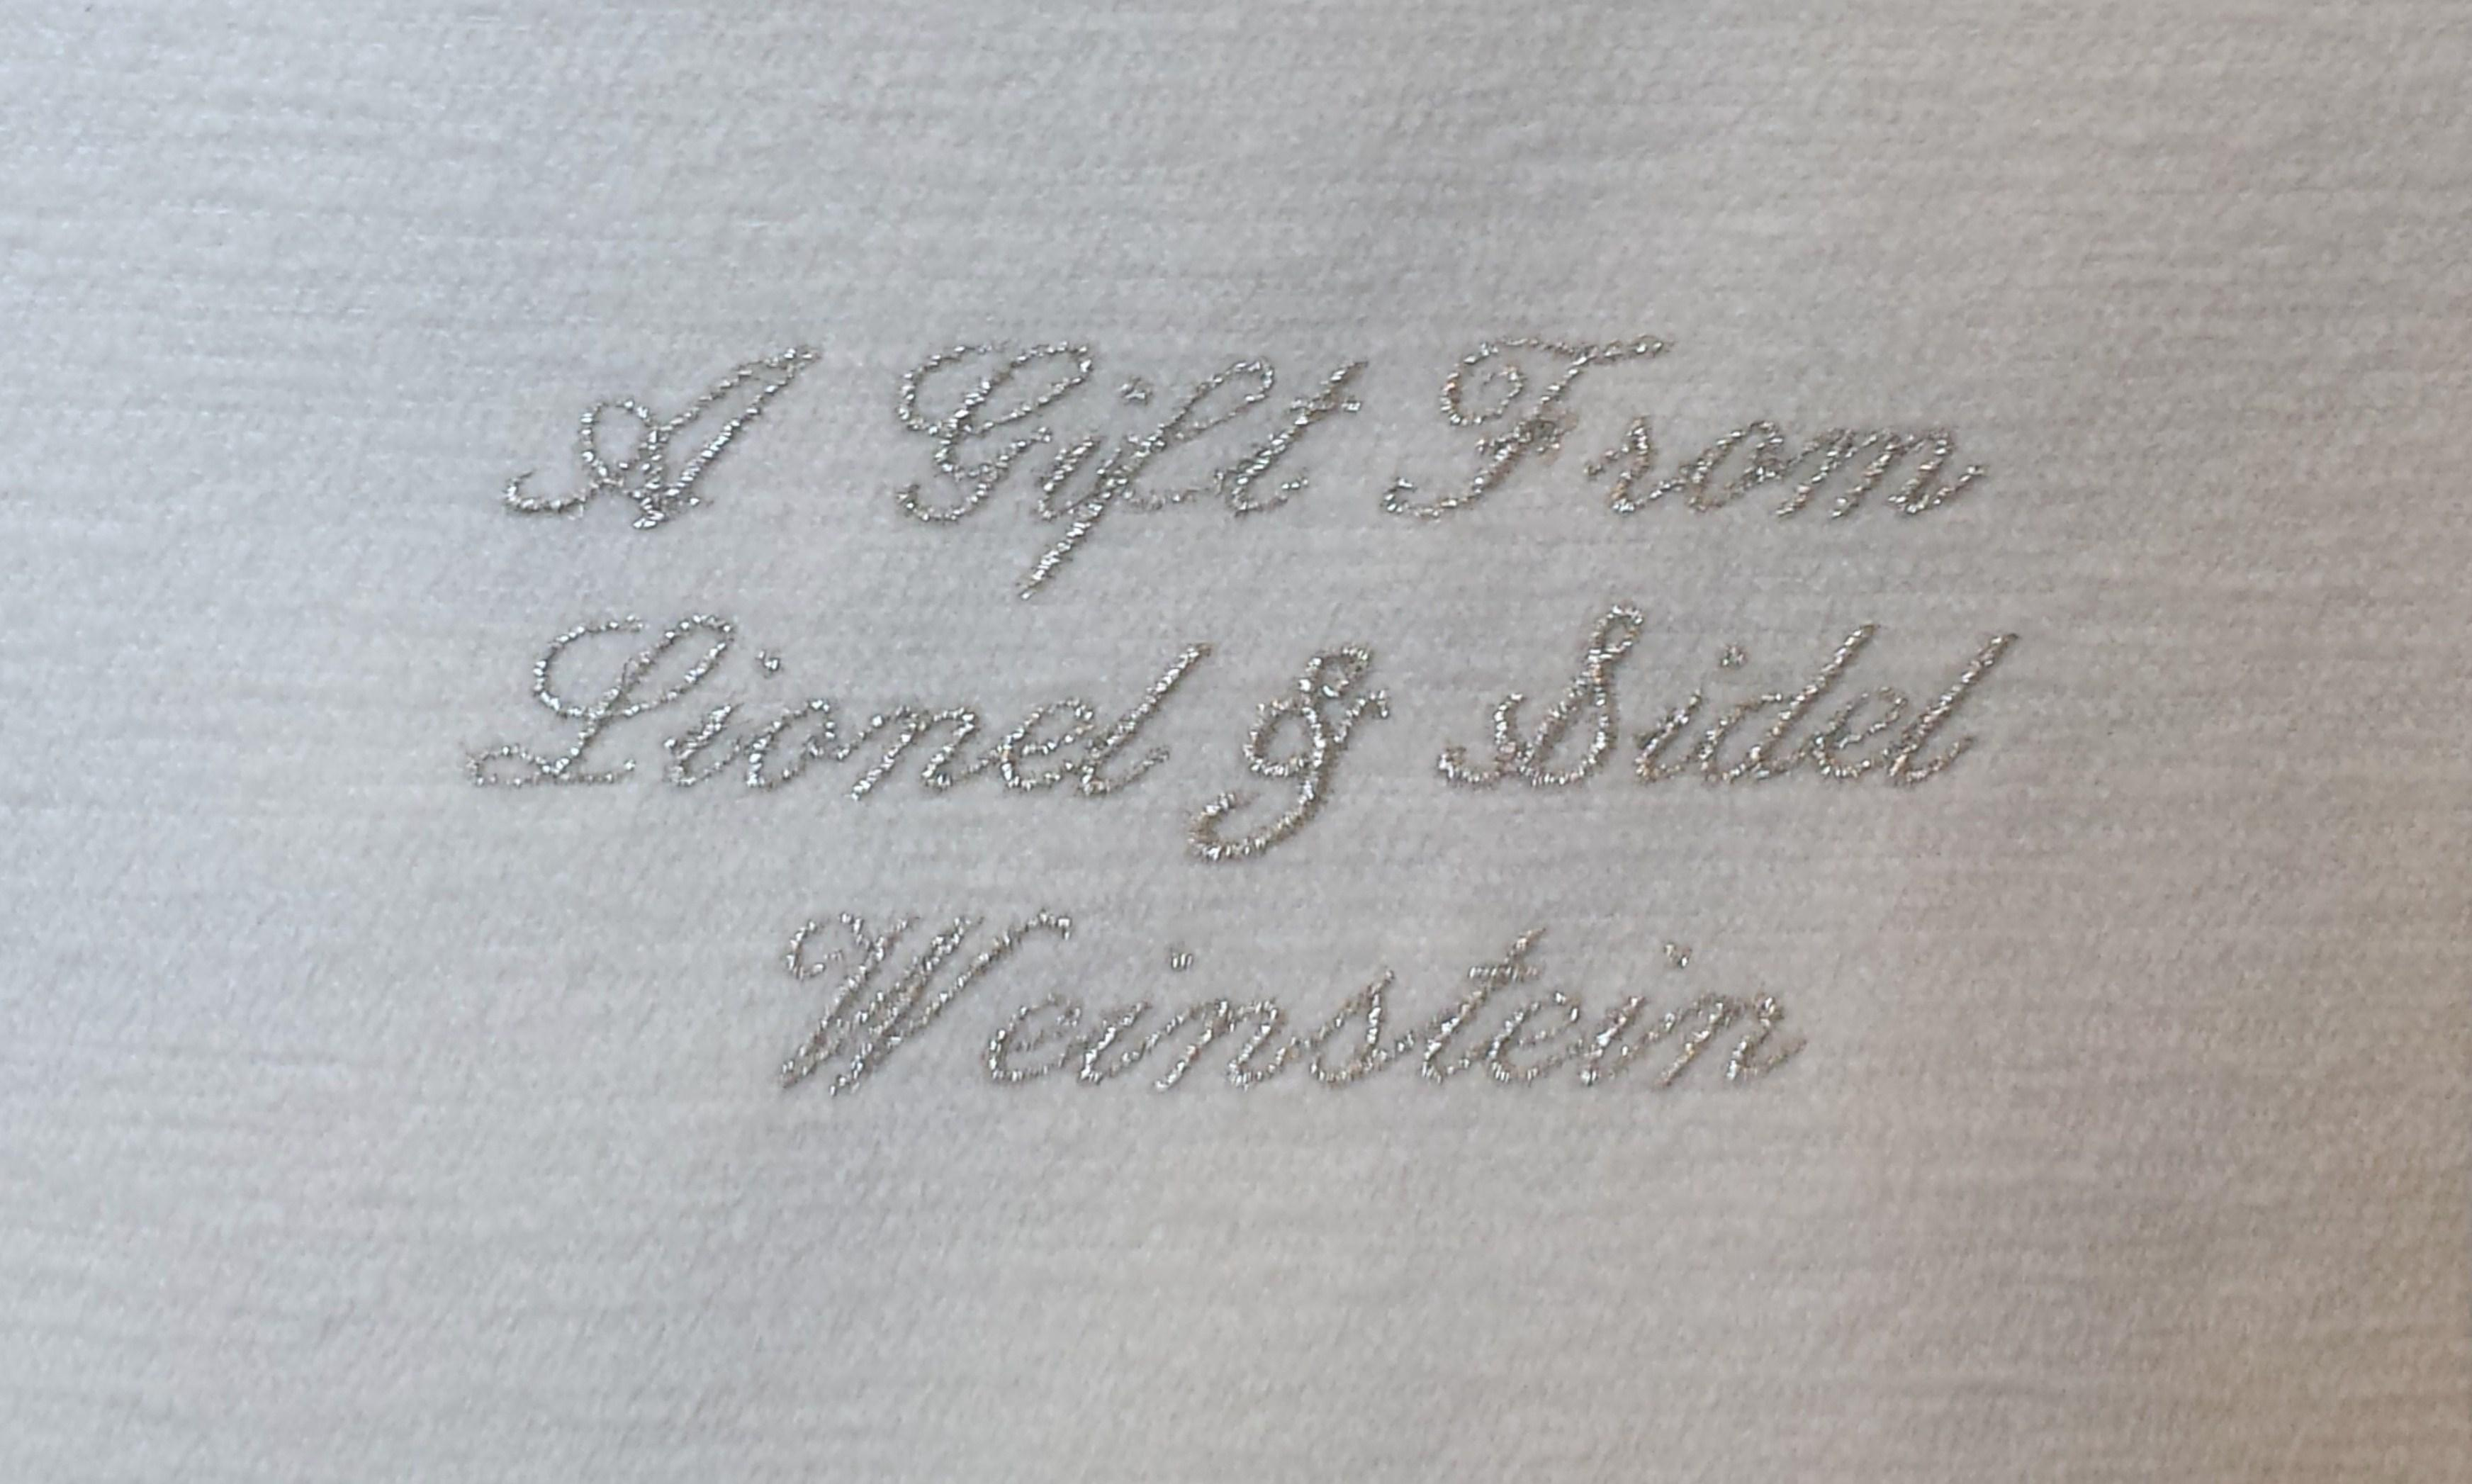 Embroidered Dedication, Script